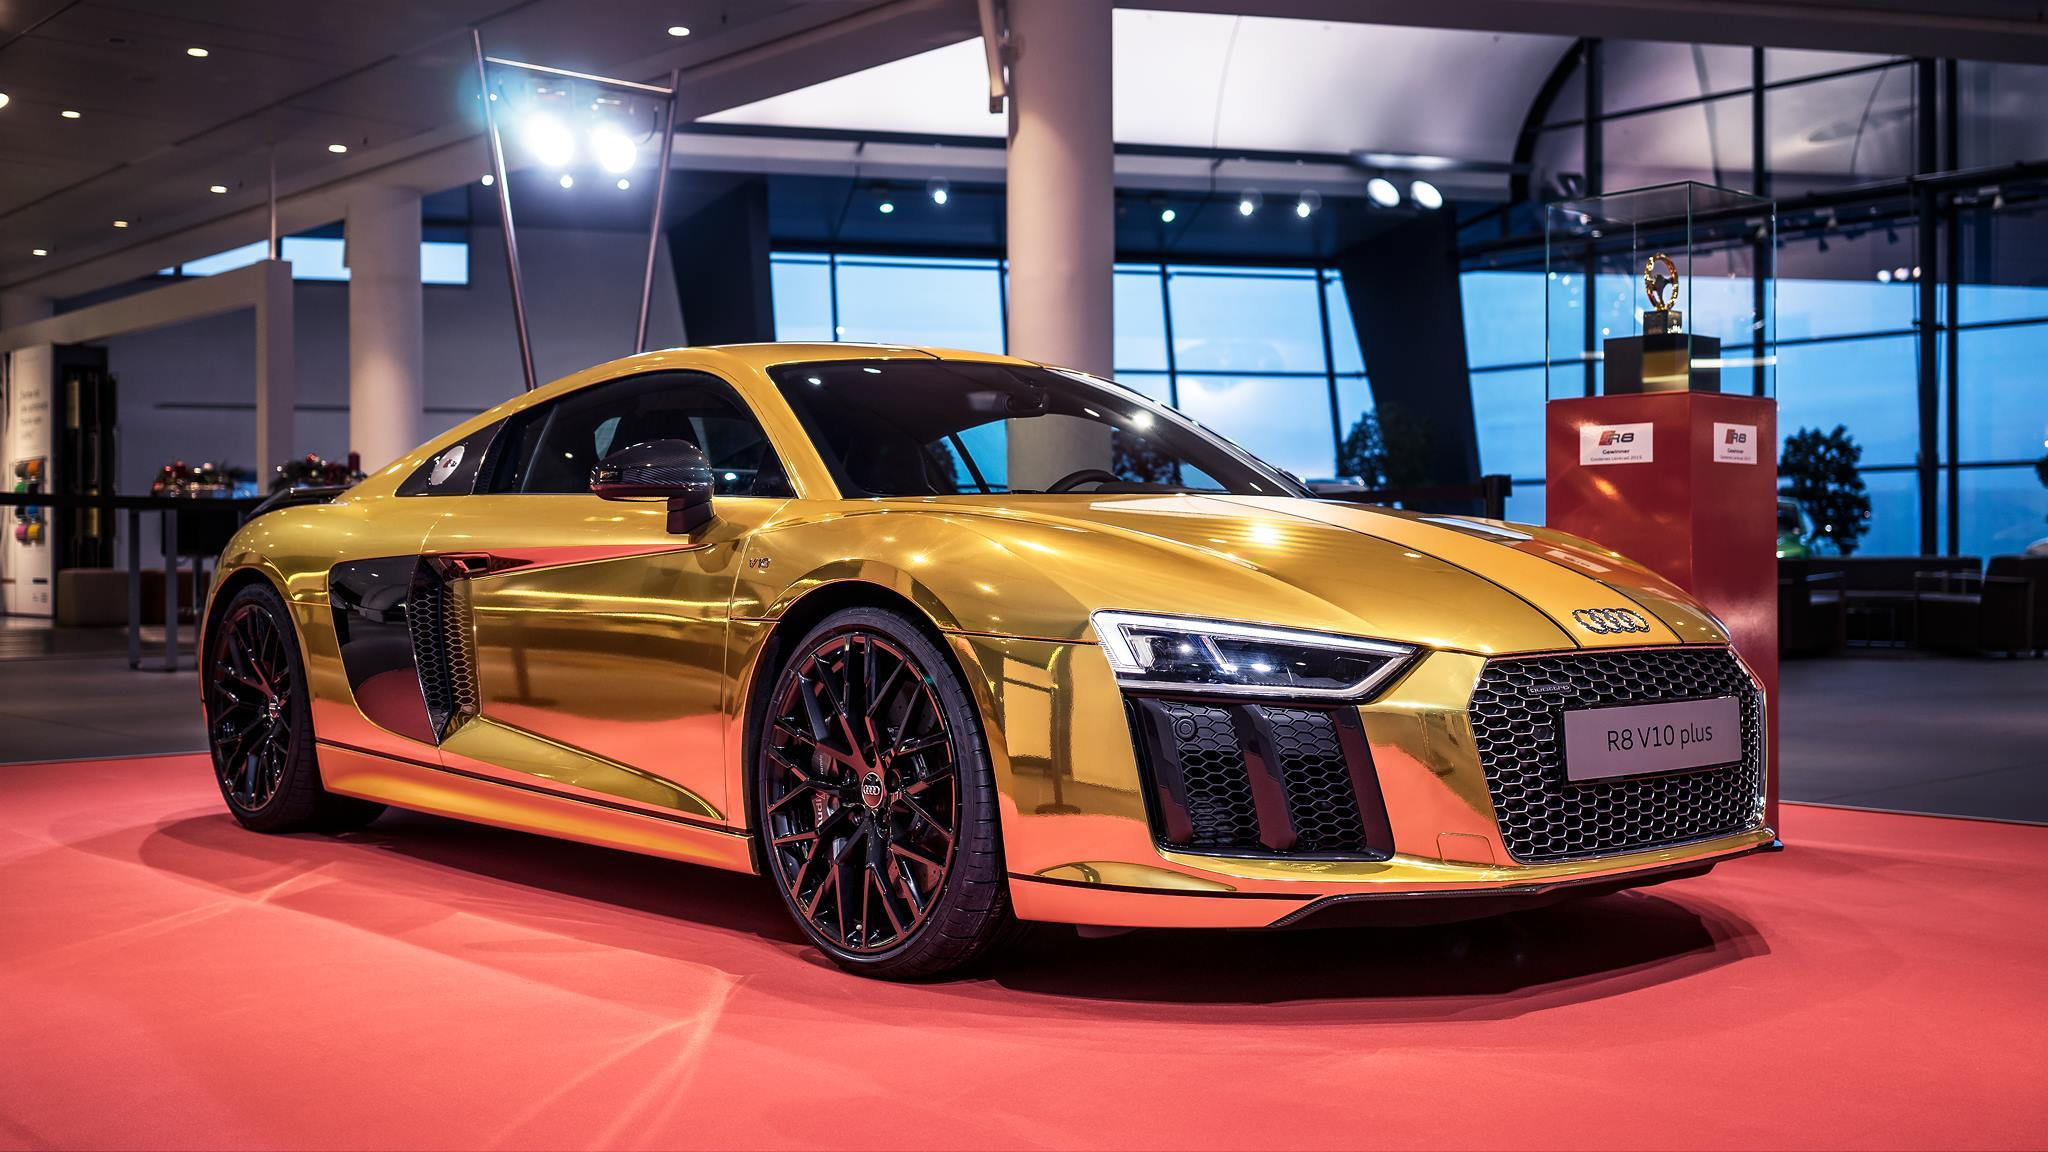 Audi R8 V10 Plus In Gold Chrome At Forum Neckarsulm Photo Gallery Autoblog